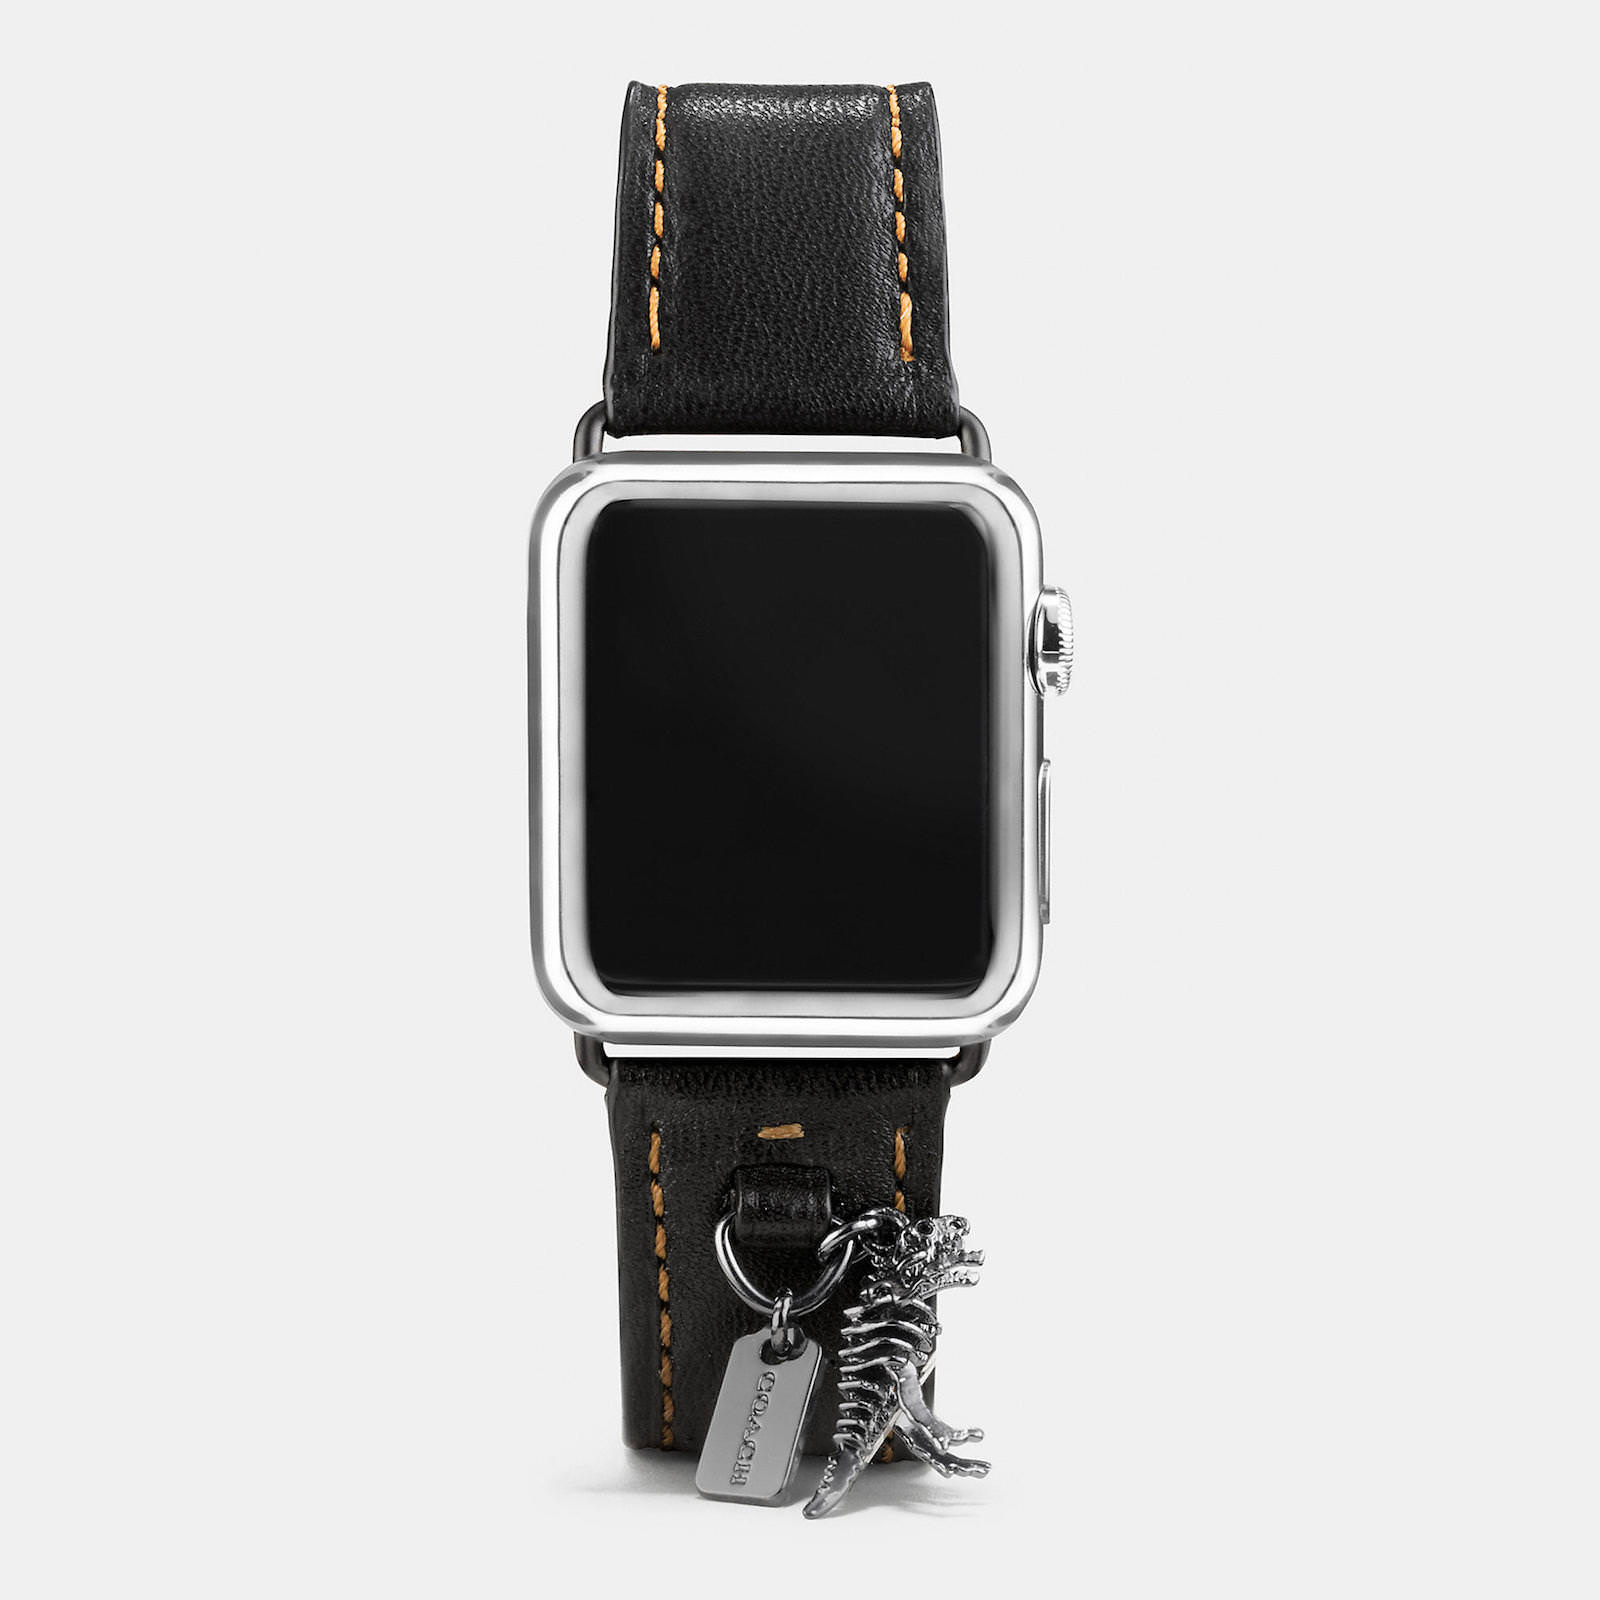 Apple-Watch-Coach-Band-Autumn-Season-9.jpeg